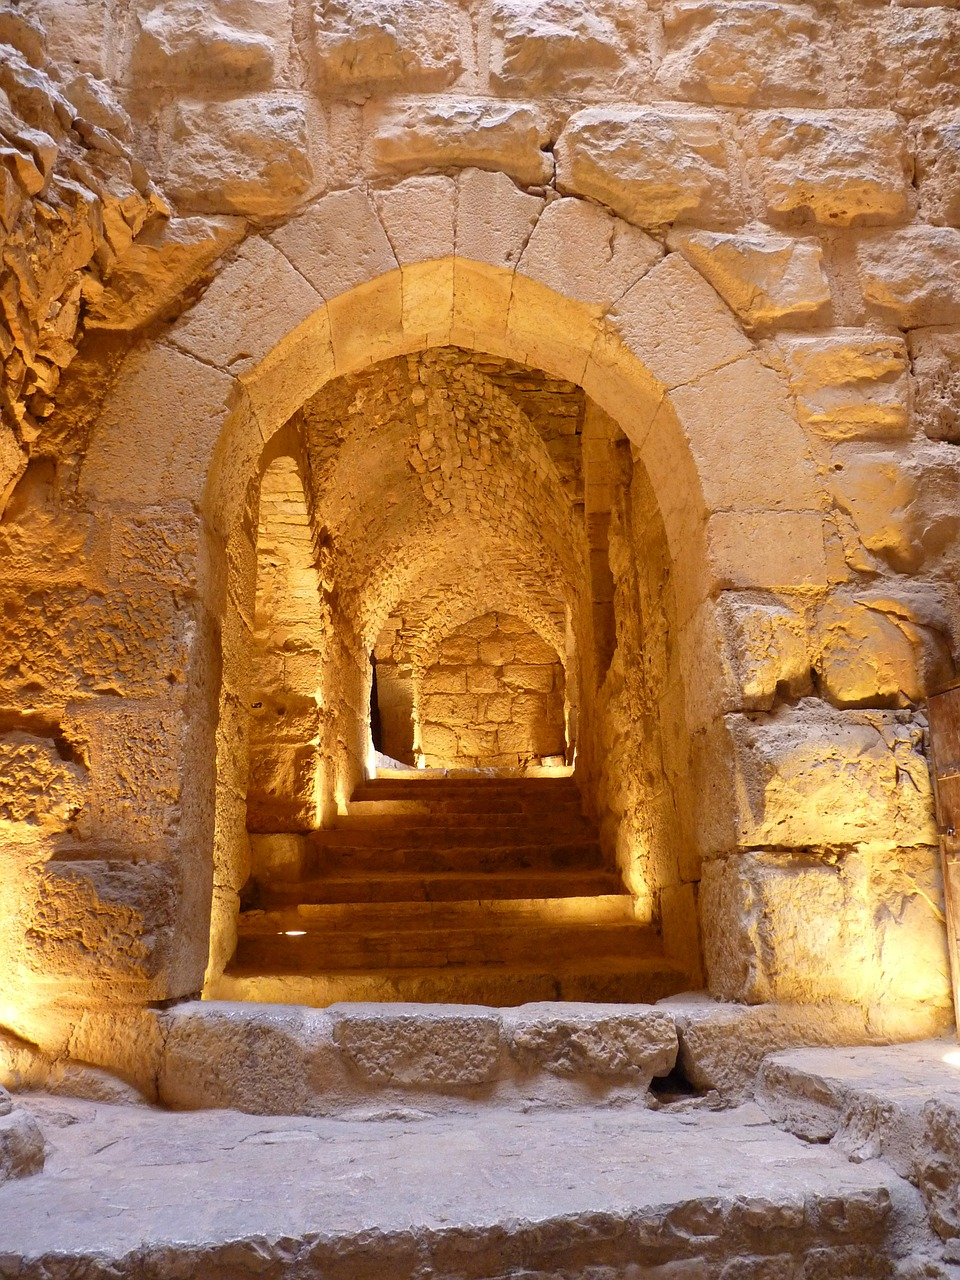 Ajloun Castle in Jordan is waiting for you to explore it